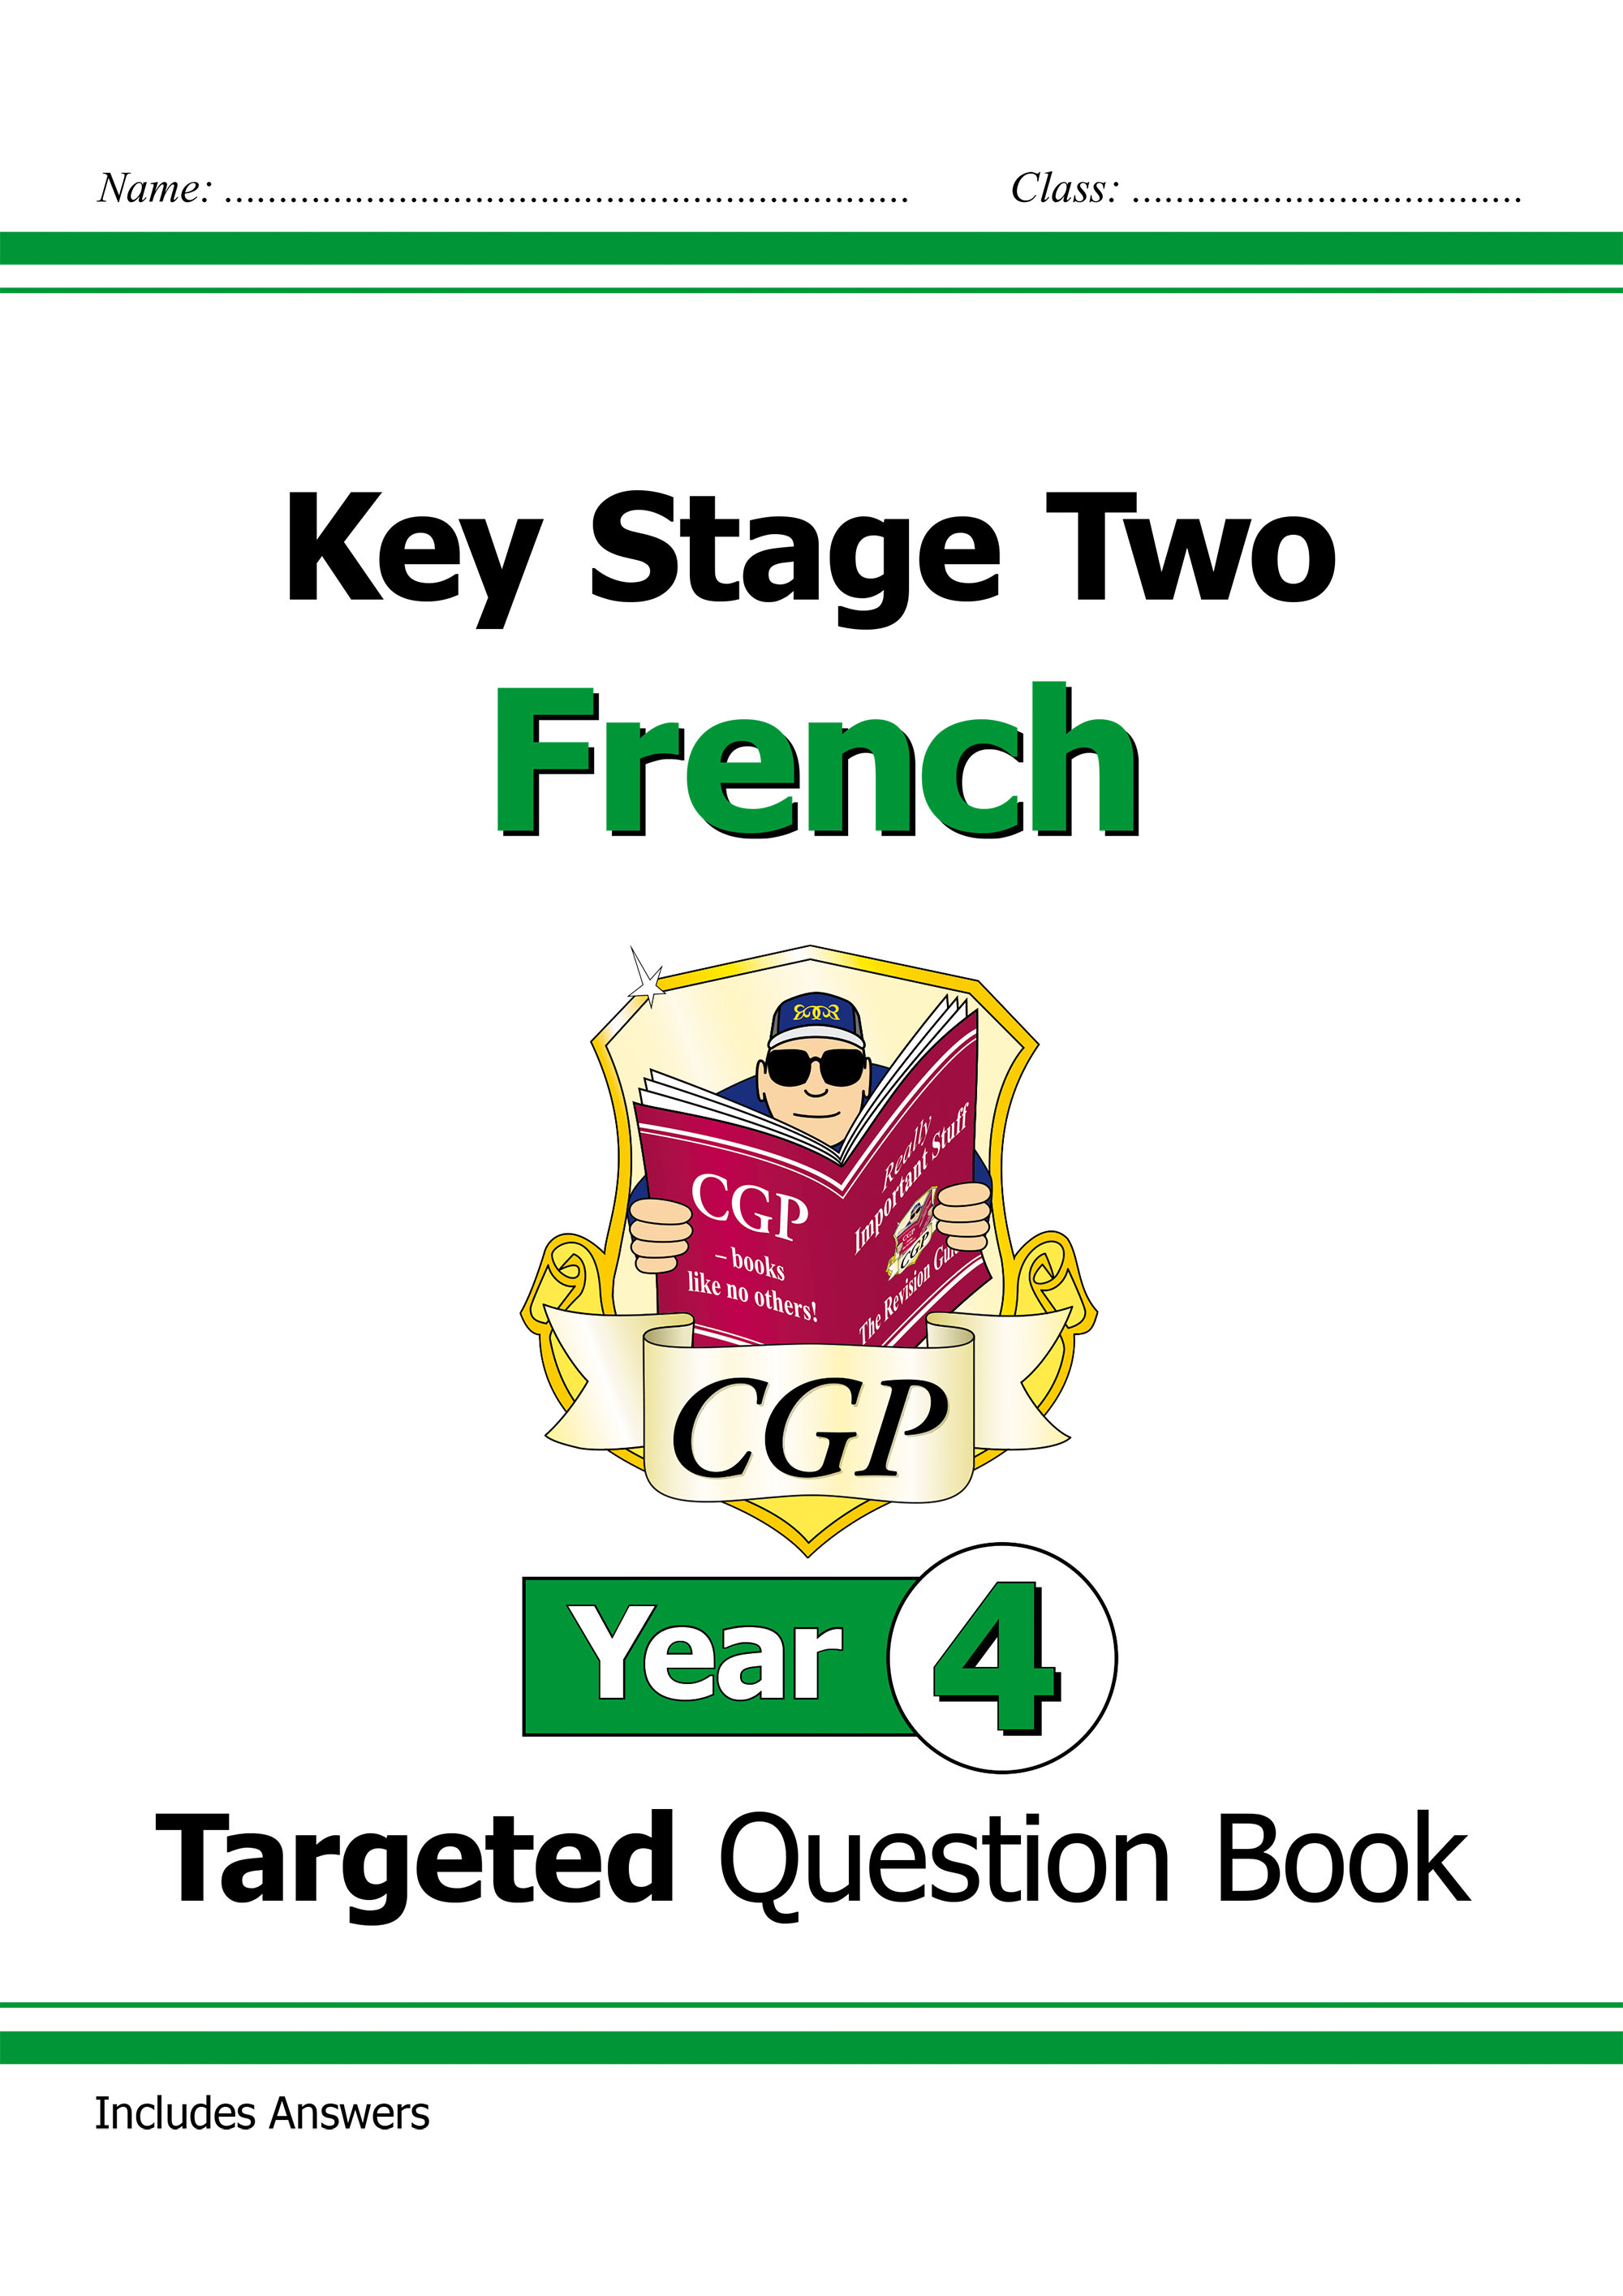 F4Q21D - New KS2 French Targeted Question Book - Year 4 Online Edition